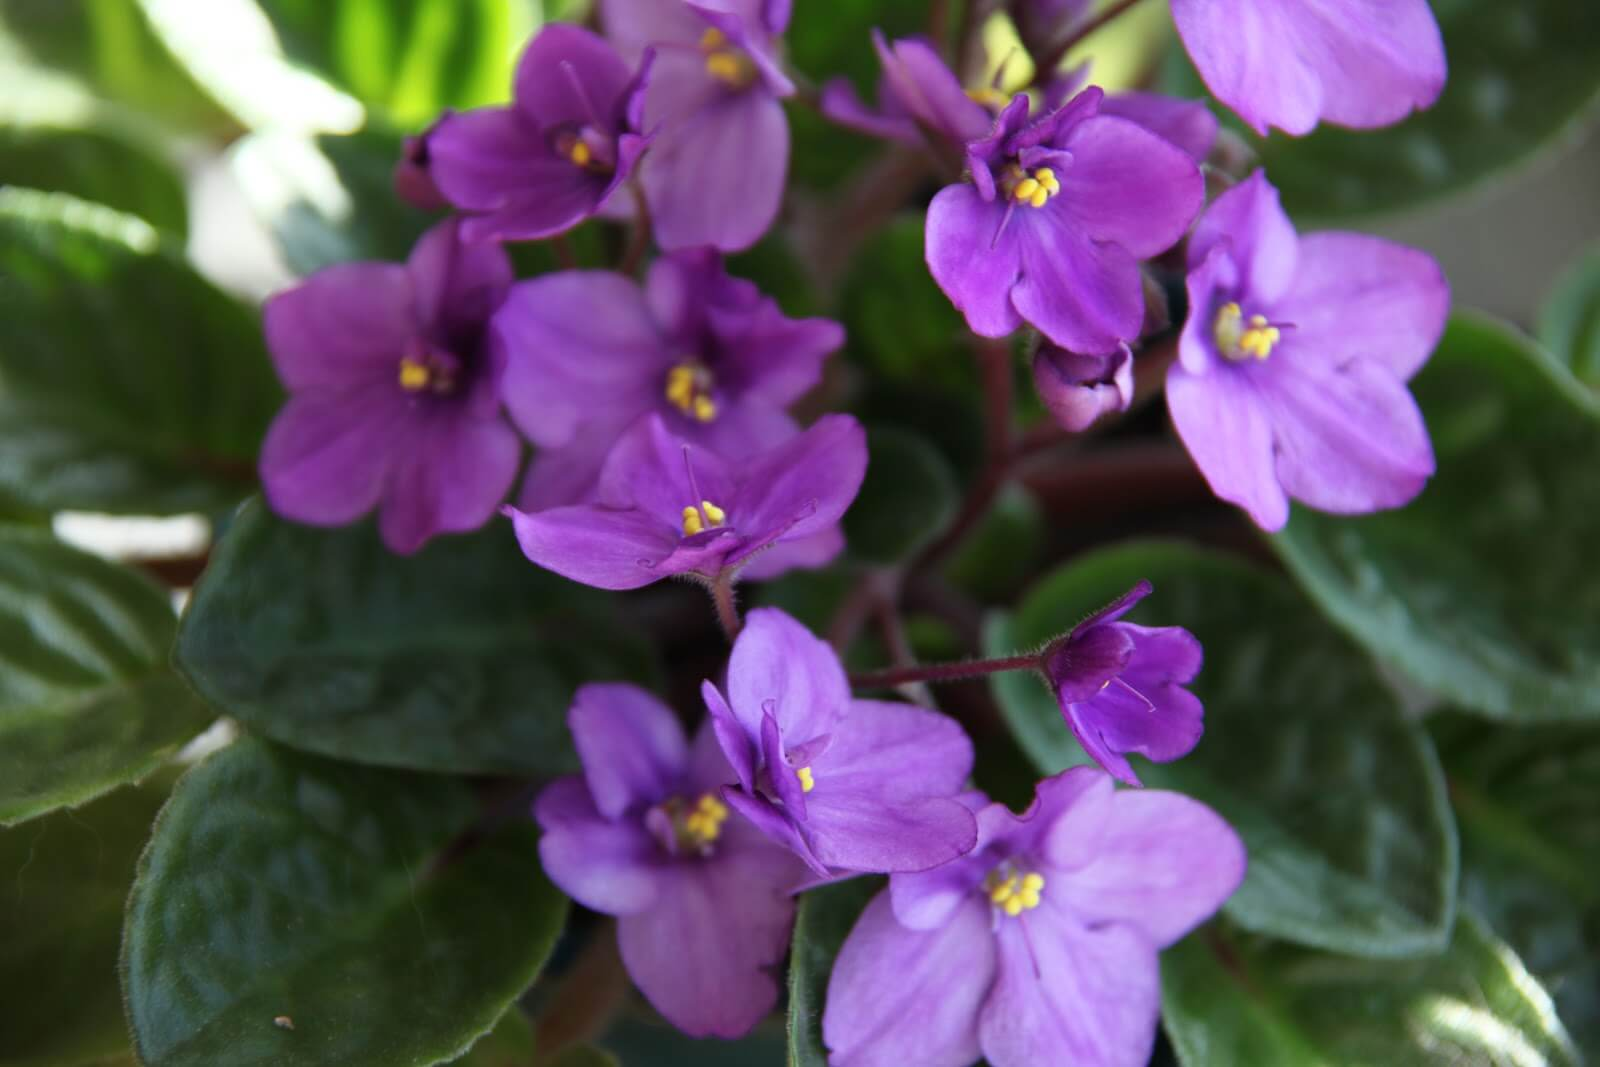 African Violet Day: February 8th!